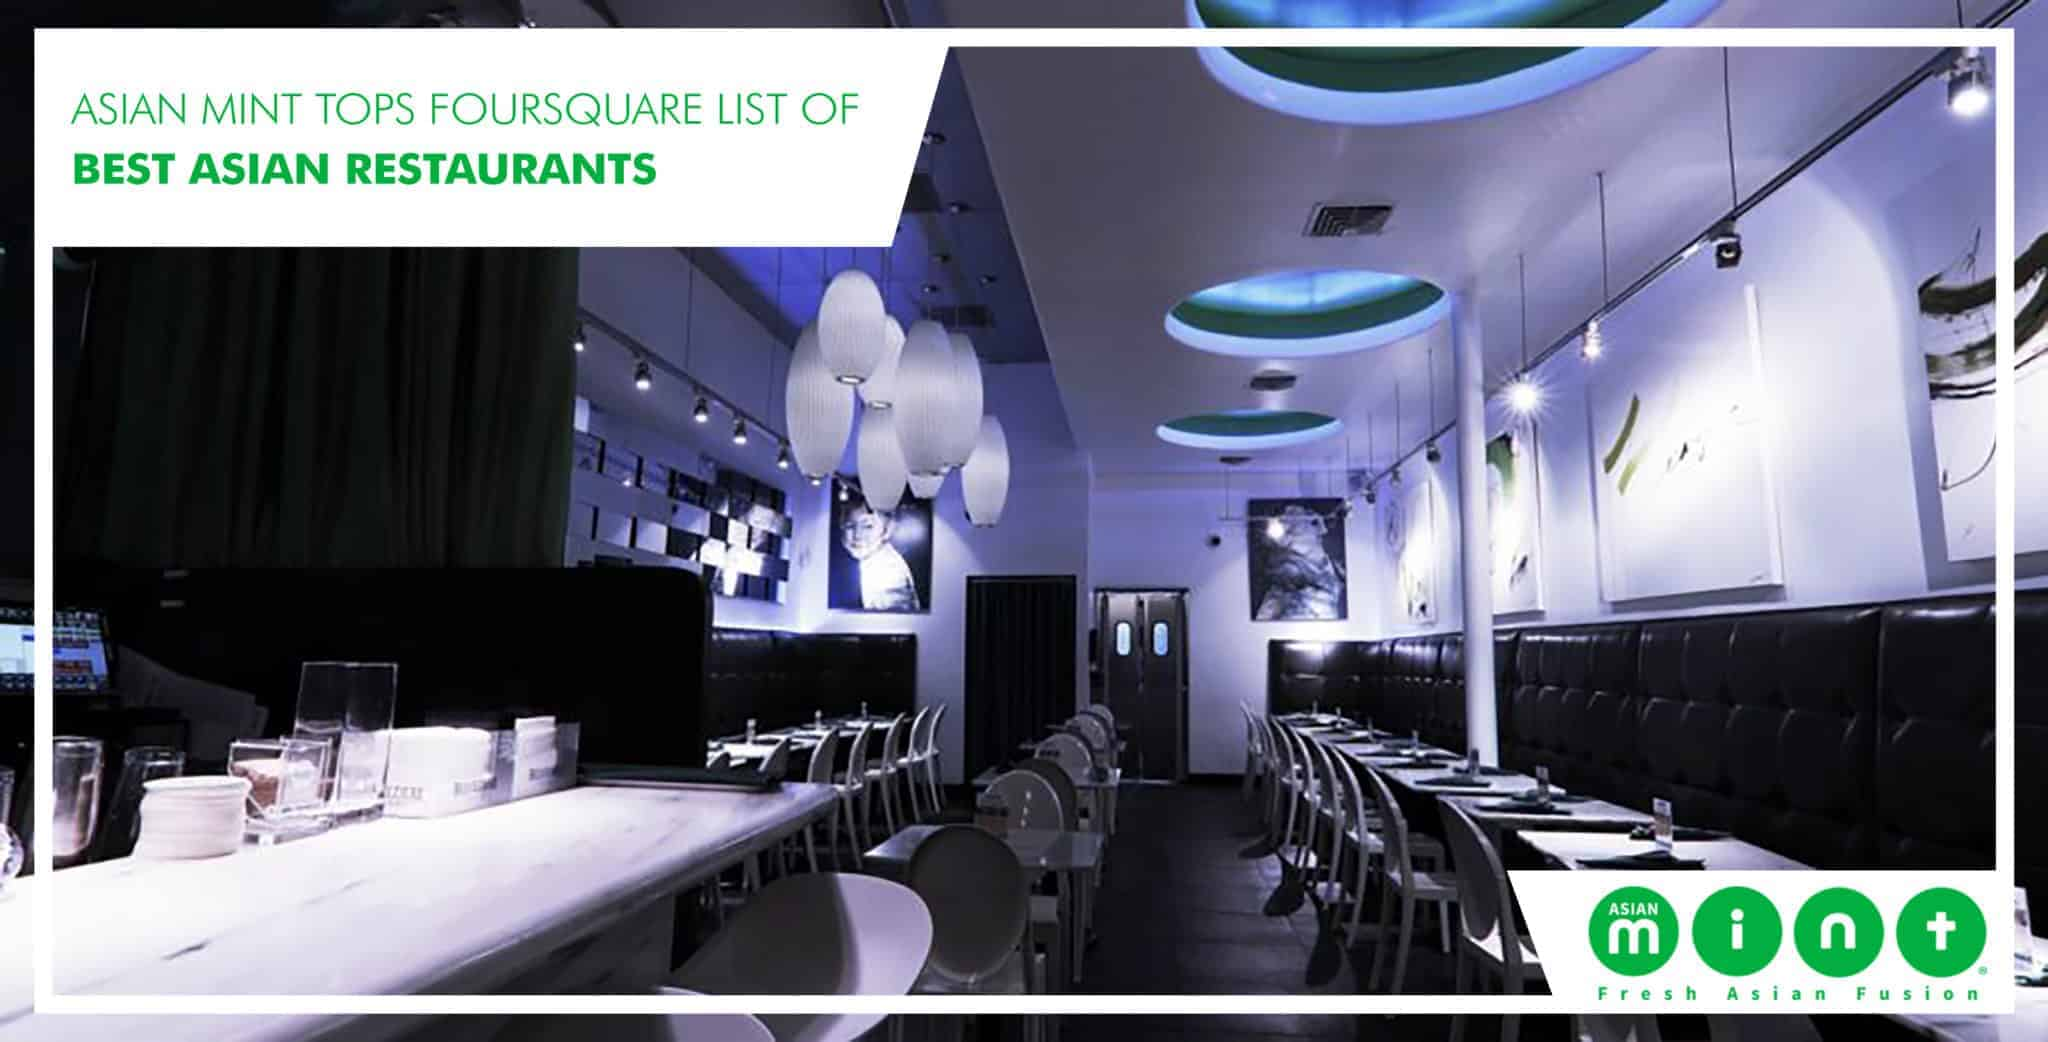 Asian Mint Tops Foursquare List of Best Asian Restaurants